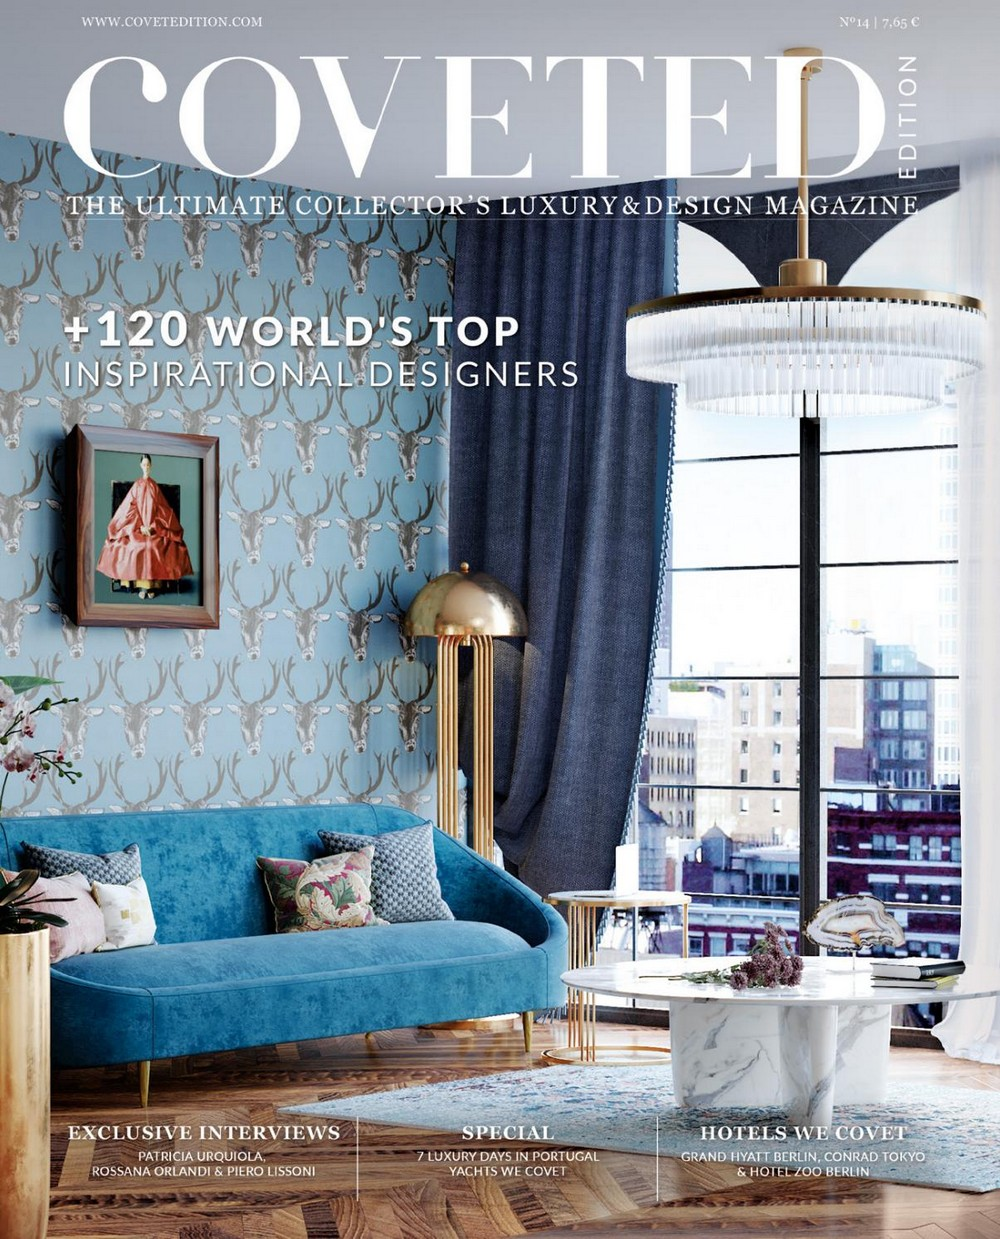 Top 7 Interior Design Magazines You Should Buy In November! interior design magazines Top 7 Interior Design Magazines You Should  Buy In November! Top 7 Interior Design Magazines You Should Buy In November 7